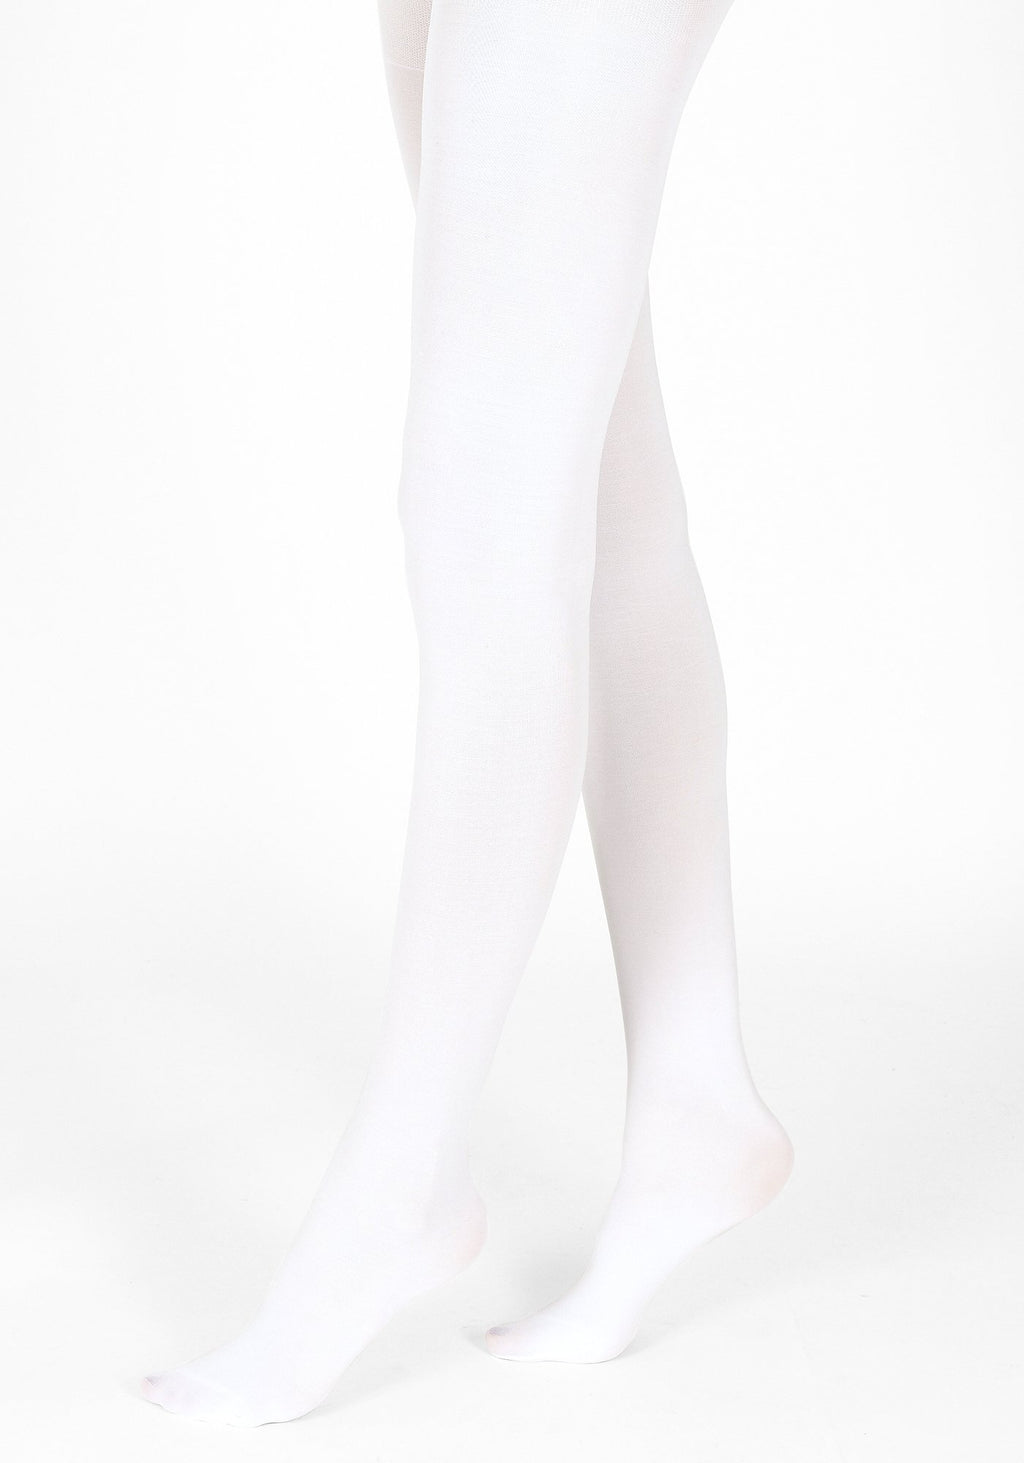 white tights 60 denier 1